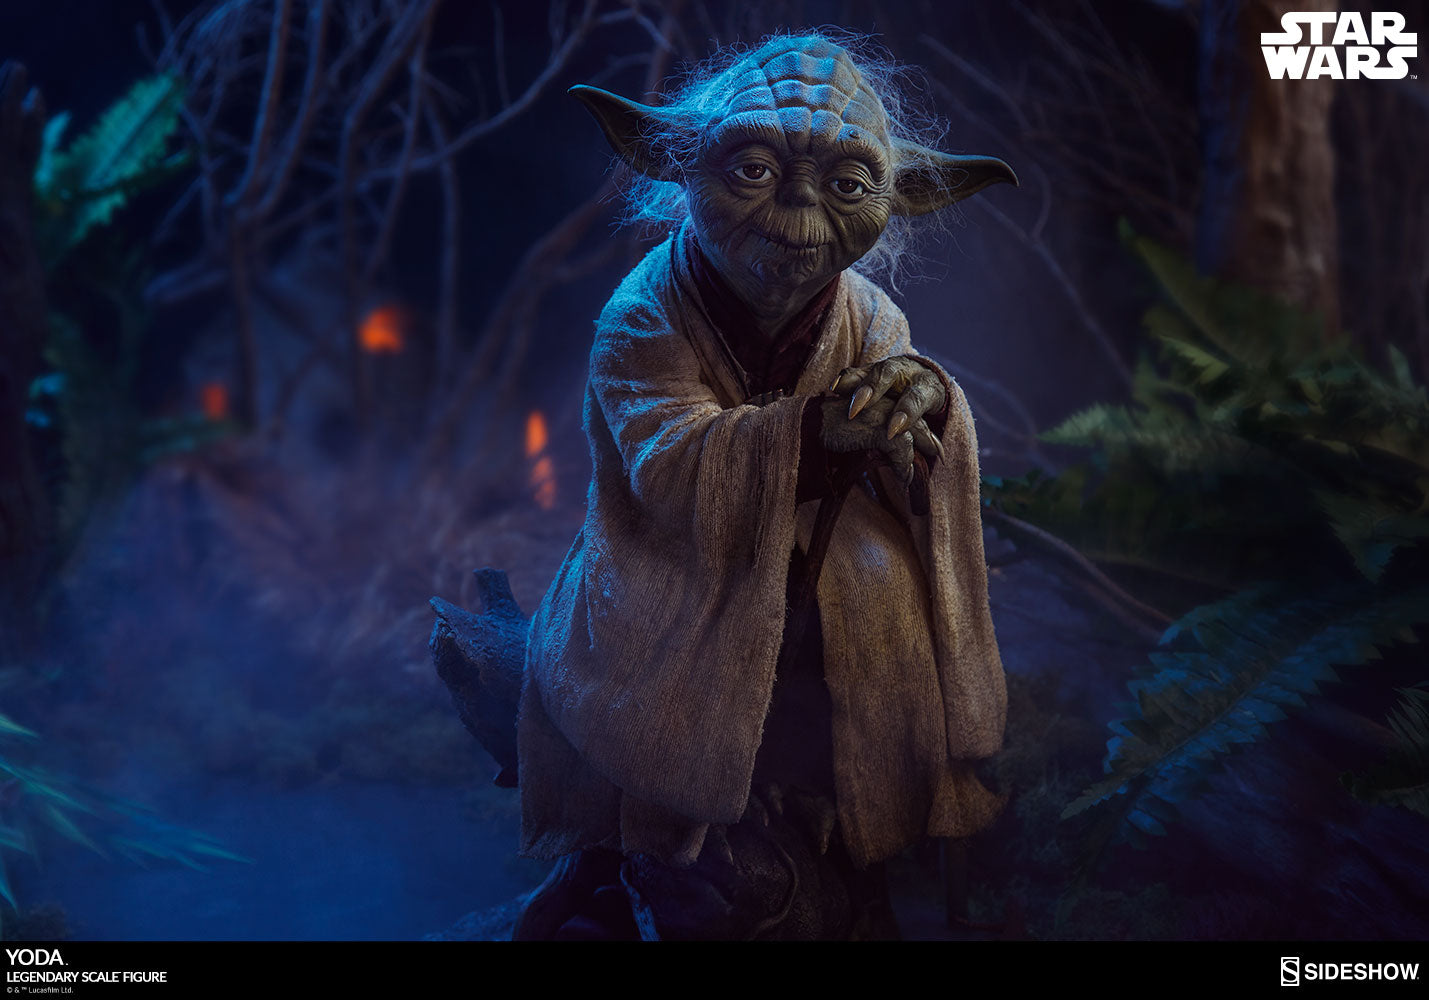 Sideshow Collectibles - Legendary Scale Figure - Star Wars - Yoda